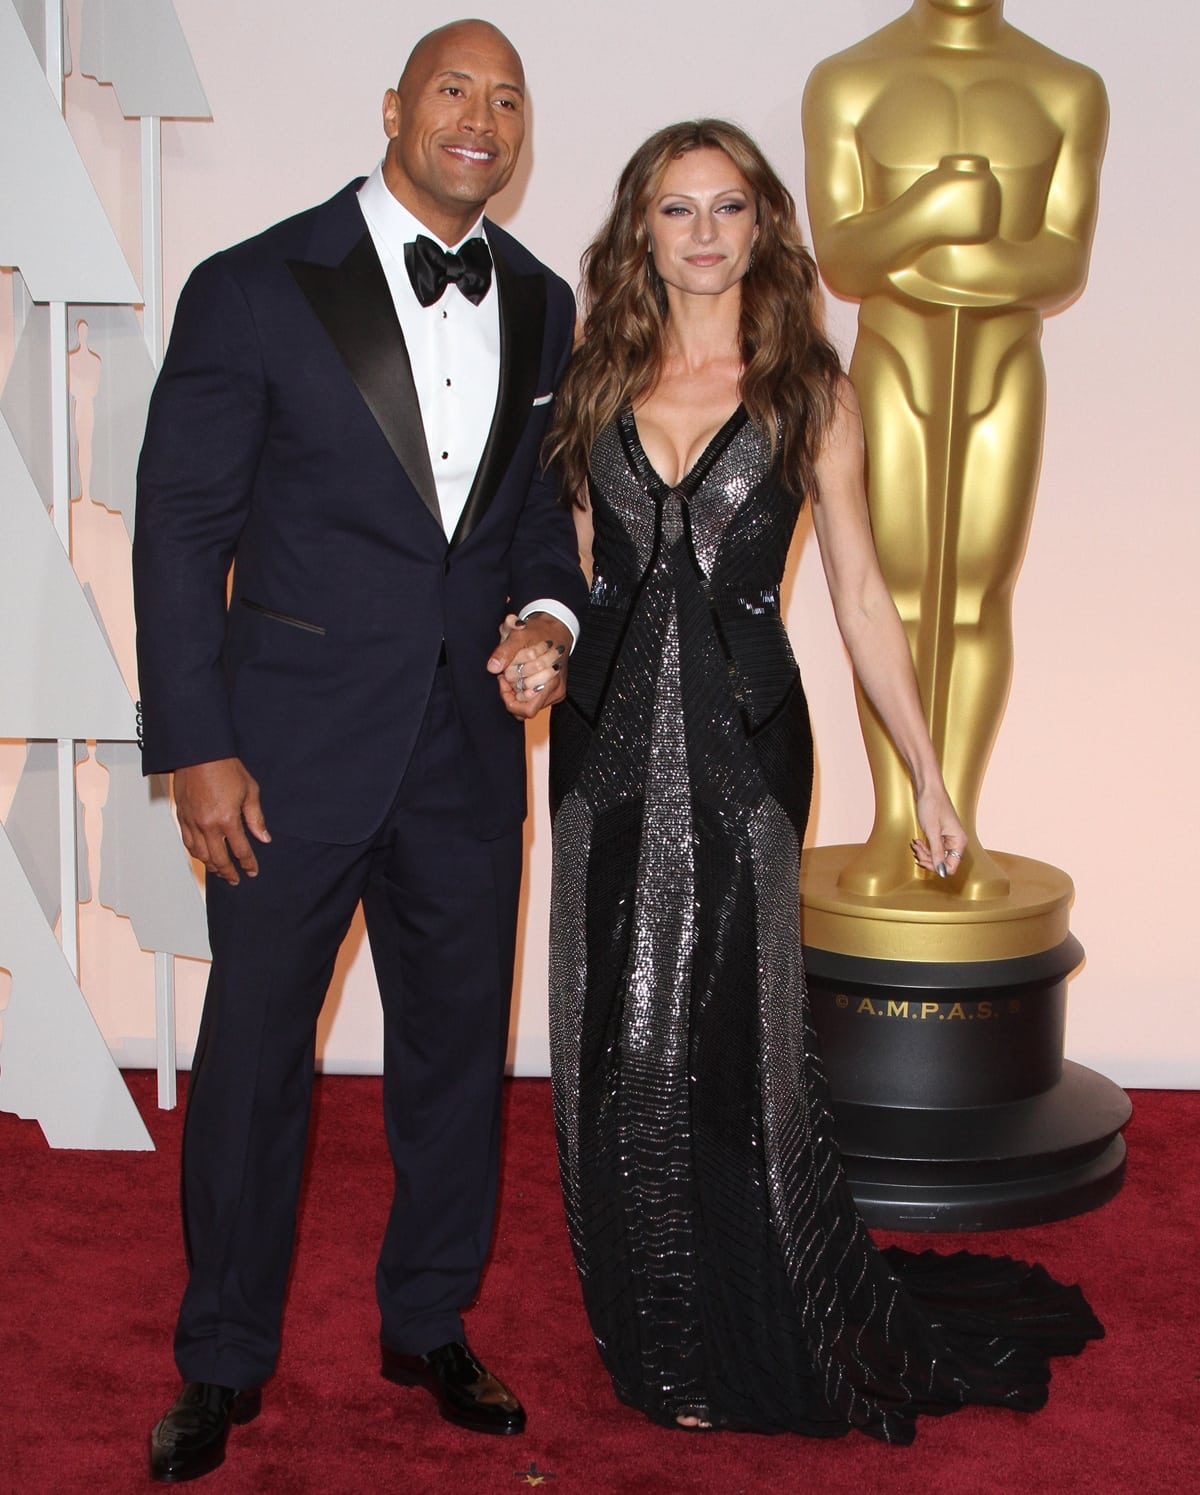 """Dwayne """"The Rock"""" Johnson with his girlfriend Lauren Hashian at the 2015 Academy Awards"""